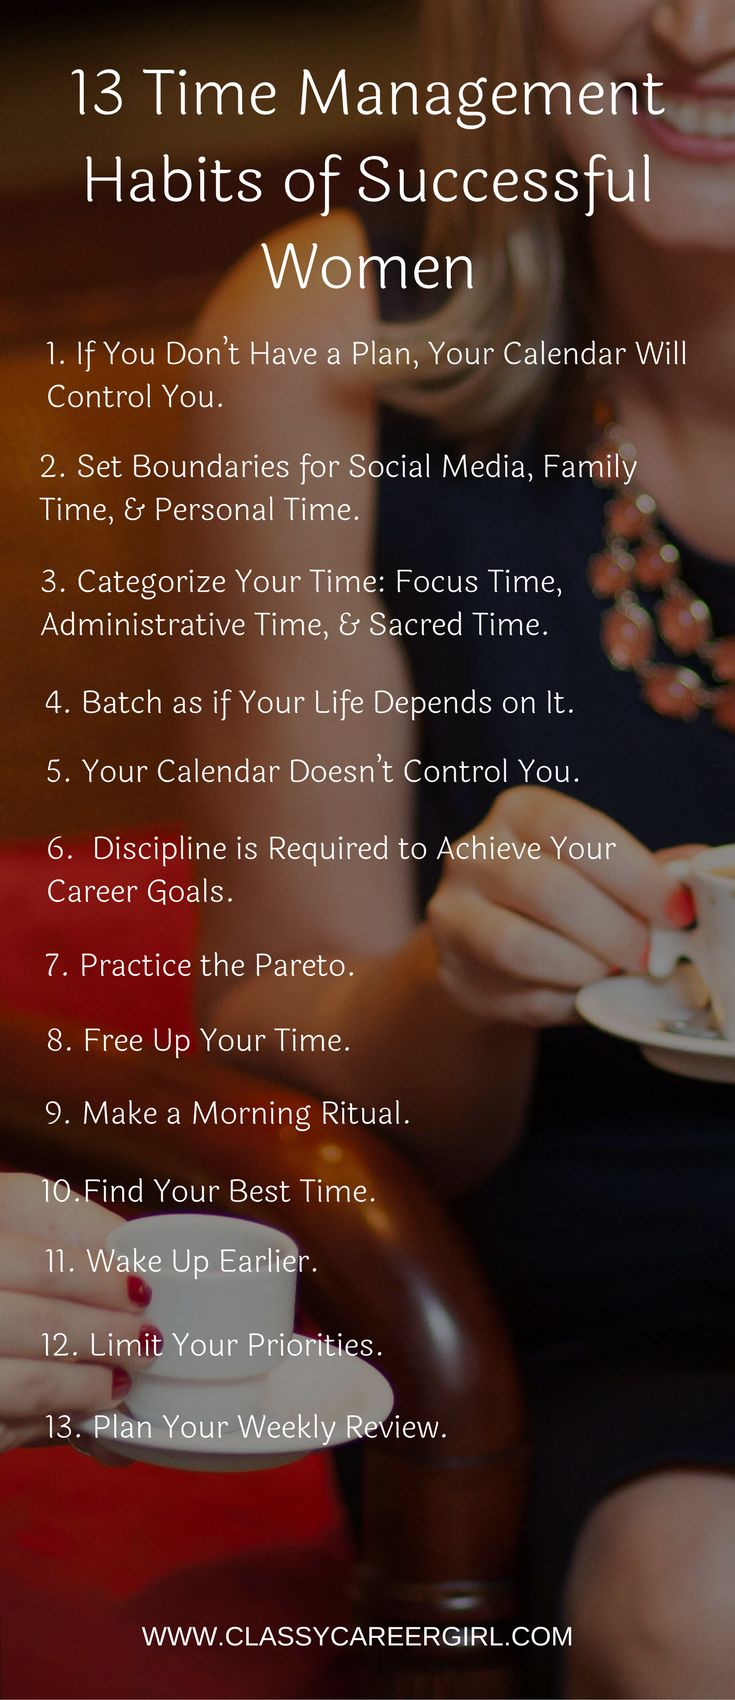 13 Time Management Habits of Successful Women - Tap the link now to Learn how I made it to 1 million in sales in 5 months with e-commerce! I'll give you the 3 advertising phases I did to make it for FREE!